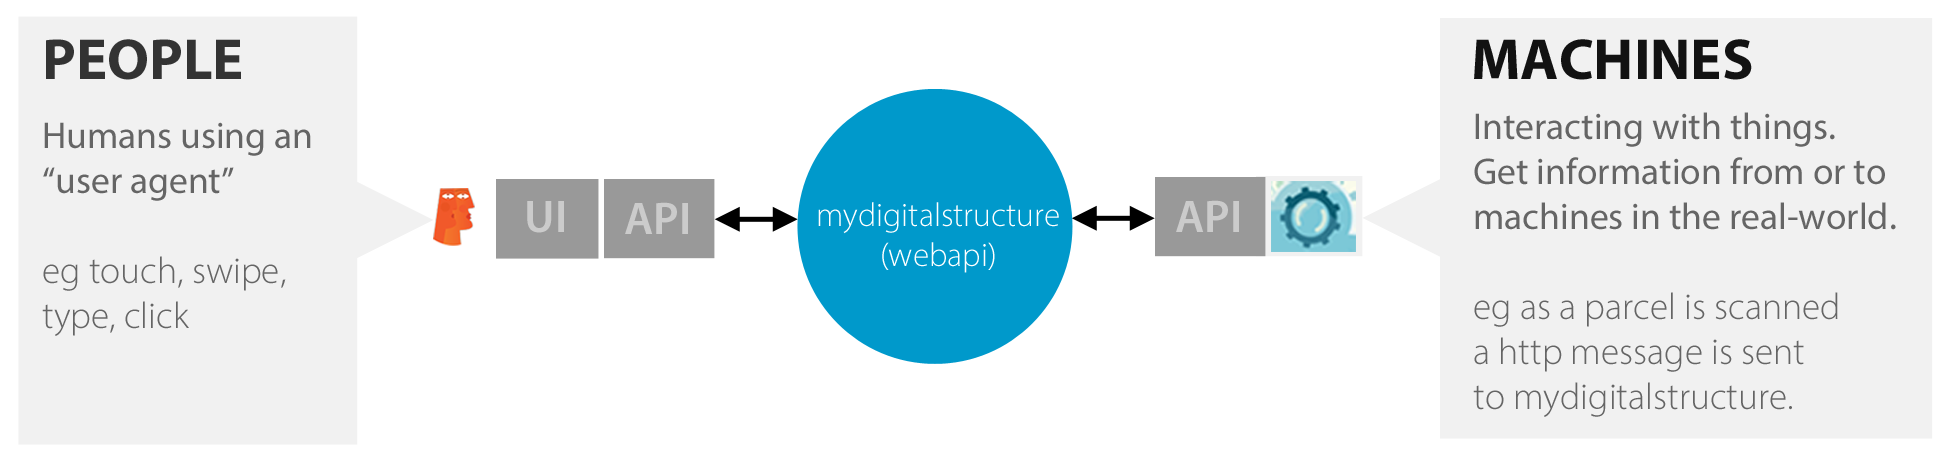 ibCom_mydigitalstructrure_Internet_of_things_1.0.